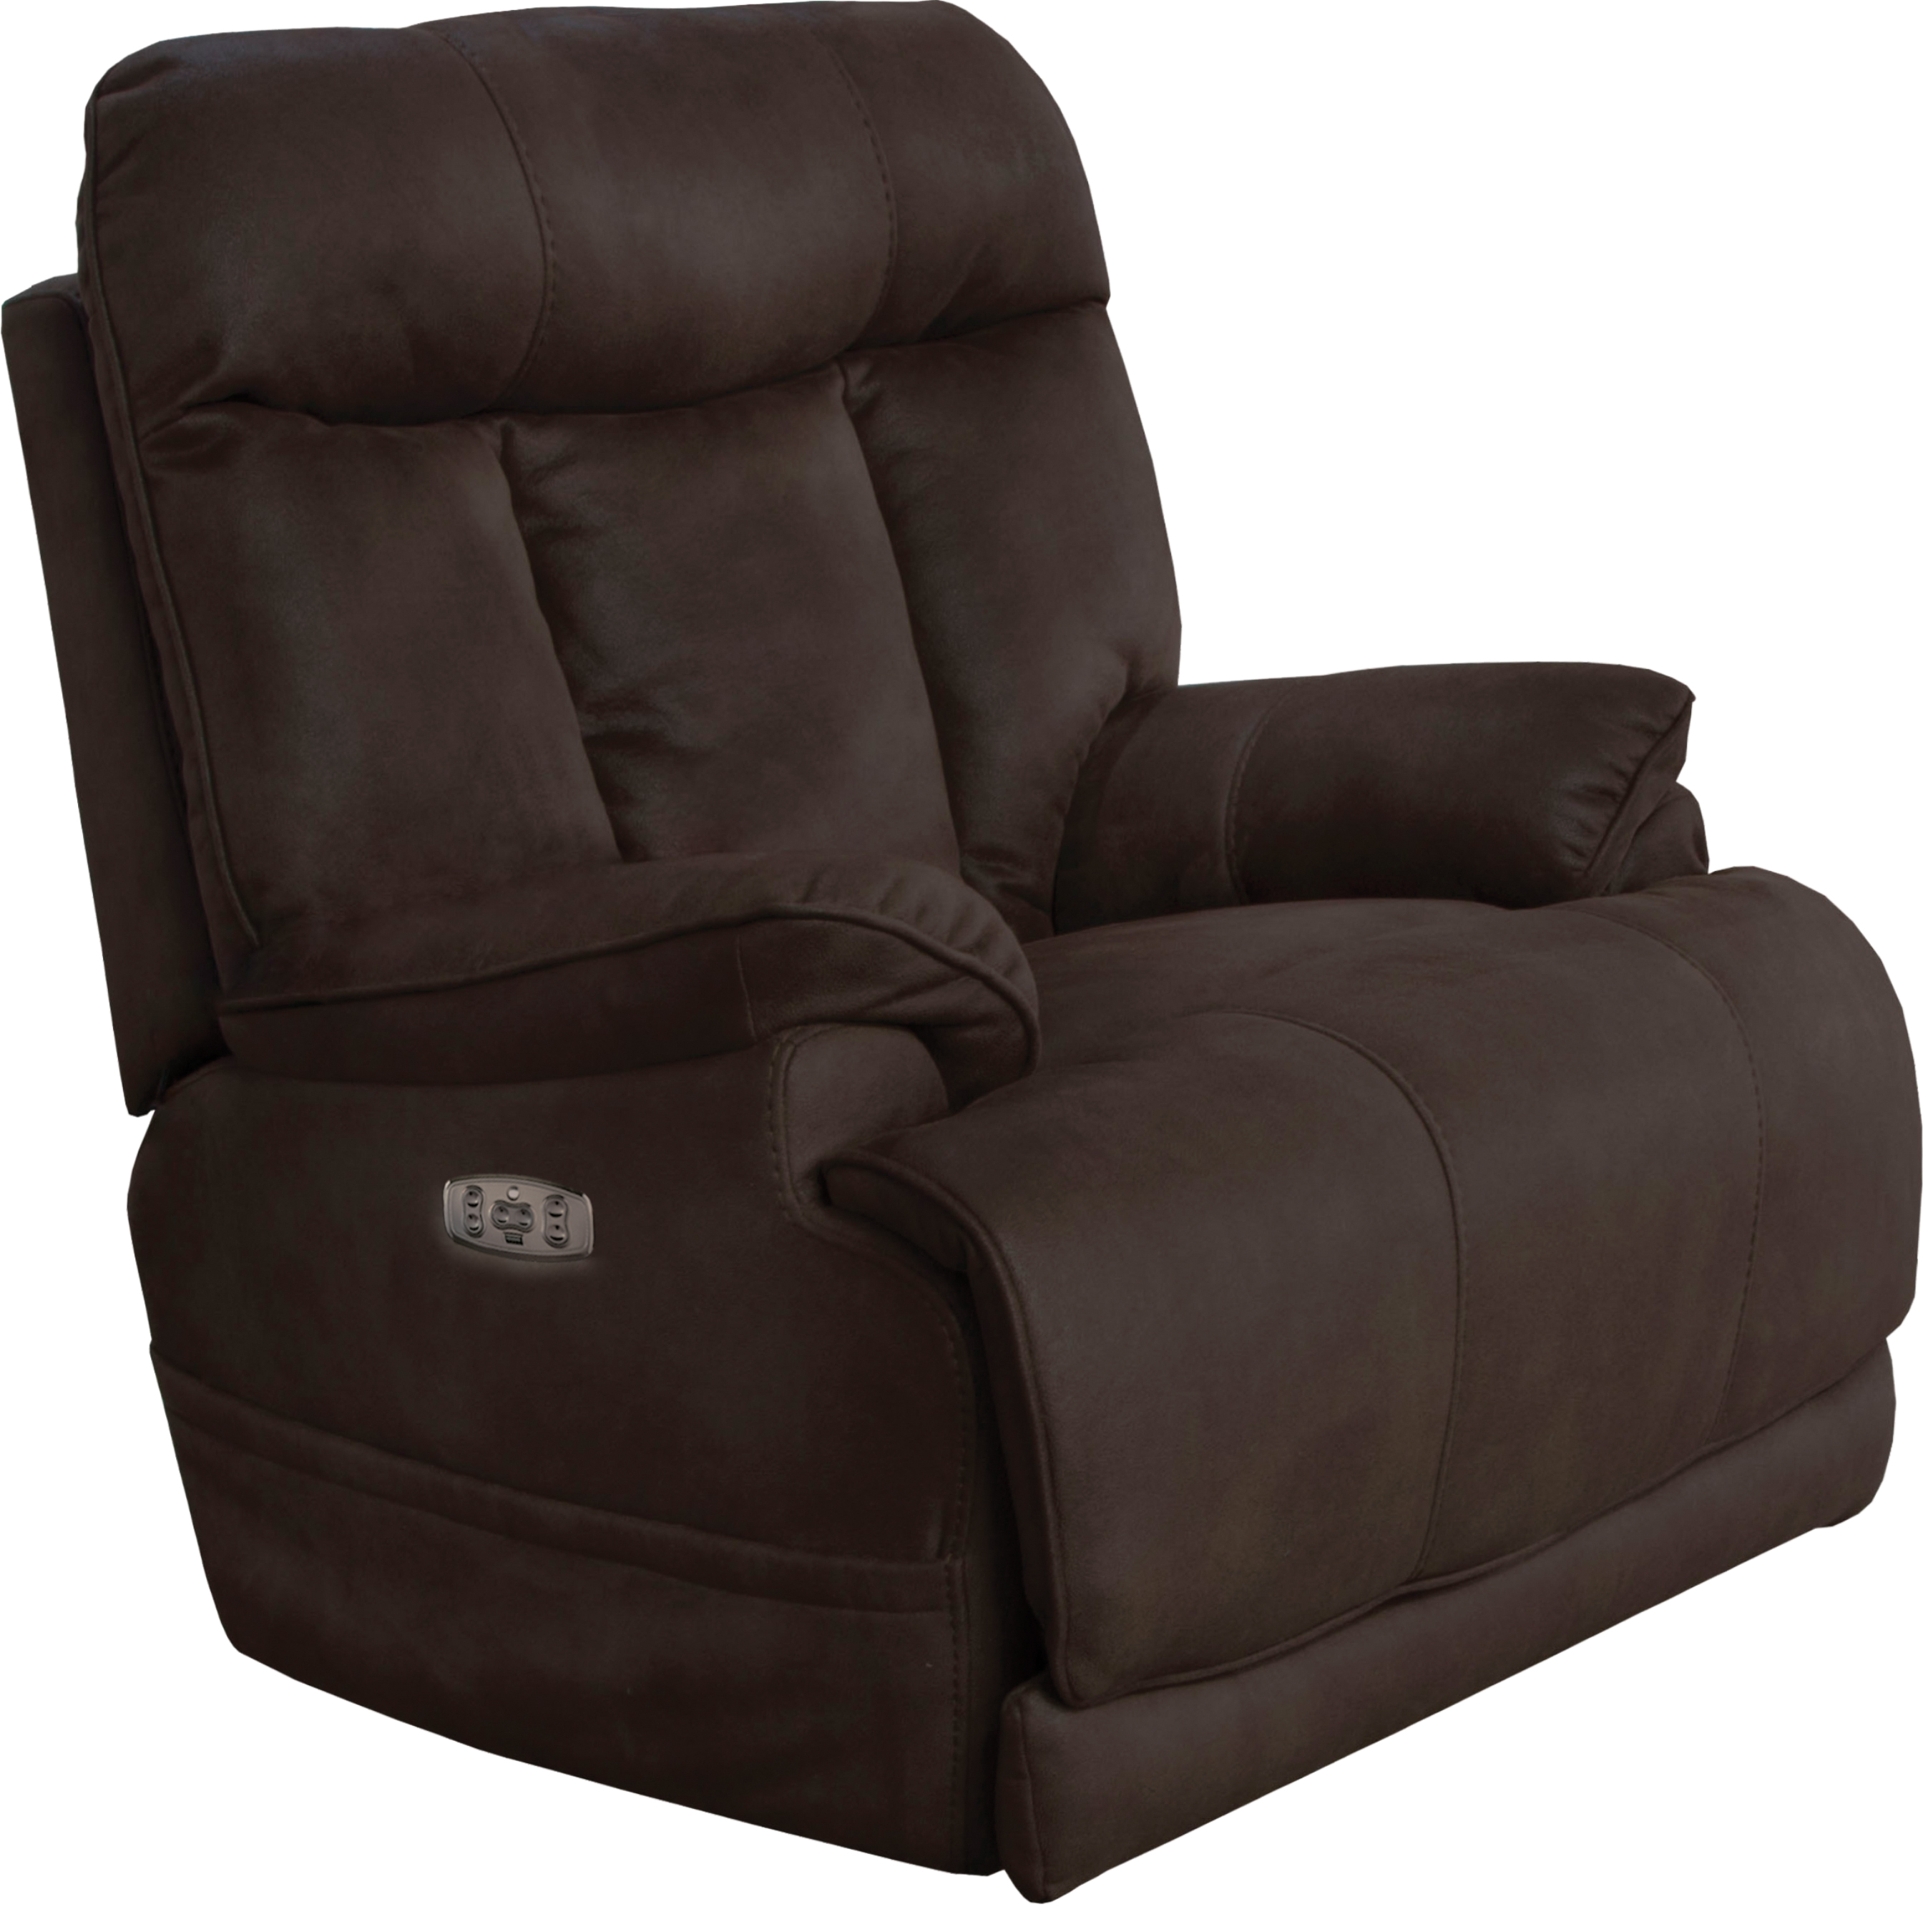 Catnapper Amos Power Lay Flat Recliner w/Extended Ottoman in Dark Chocolate